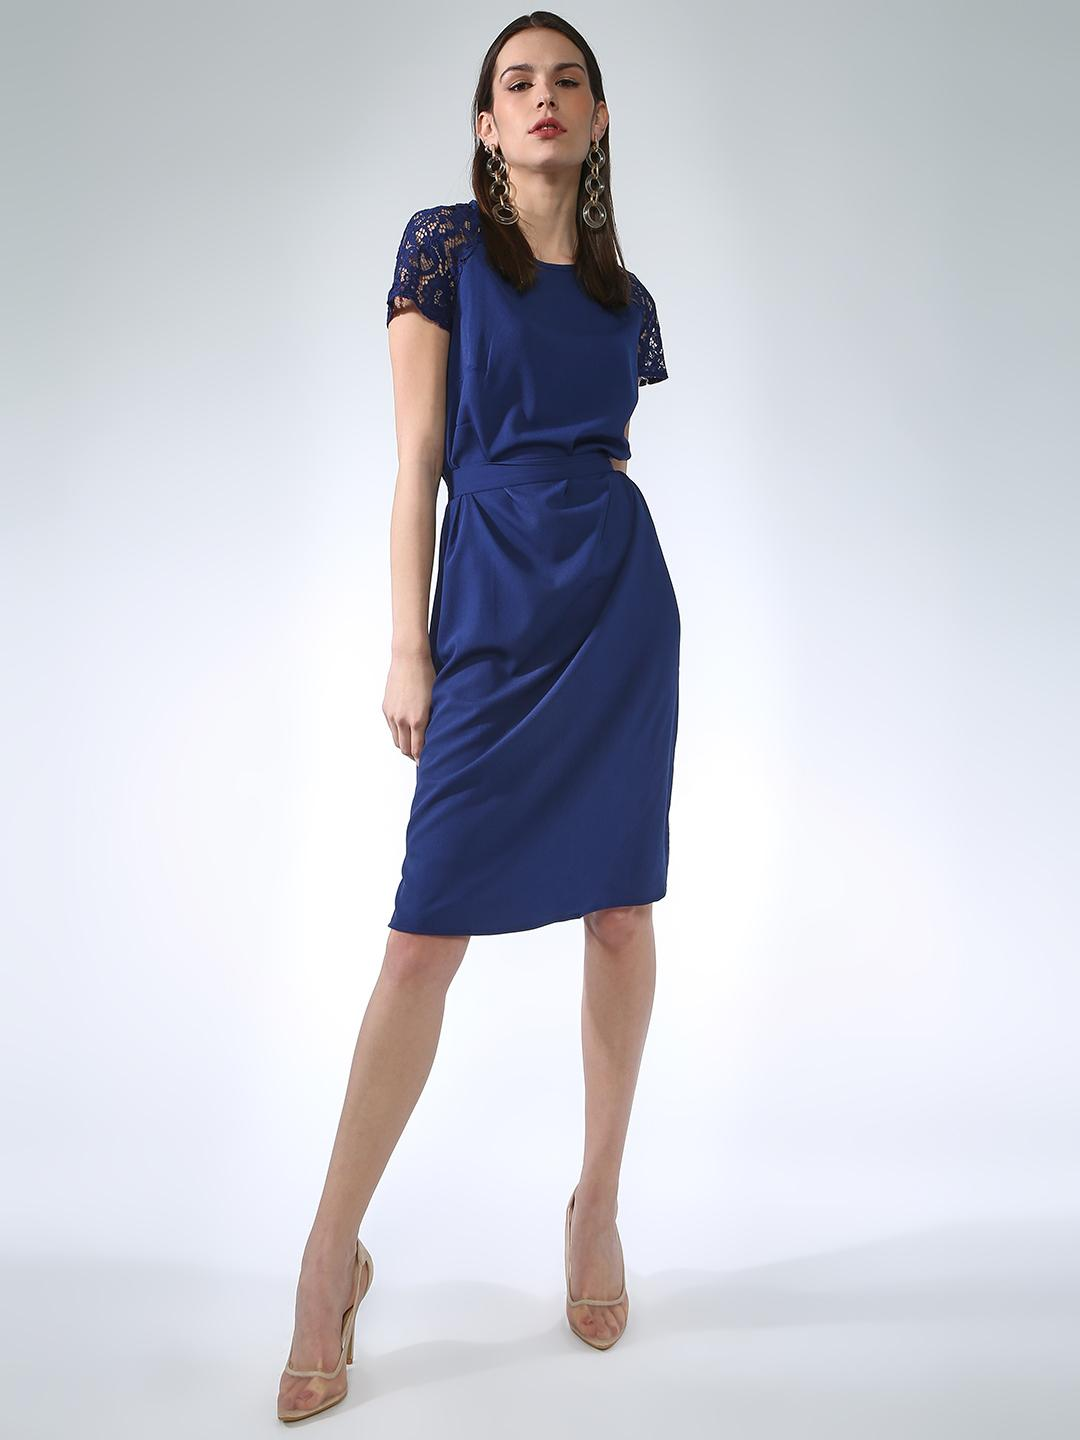 Oxolloxo Navy Waist Tie-Knot Dress 1